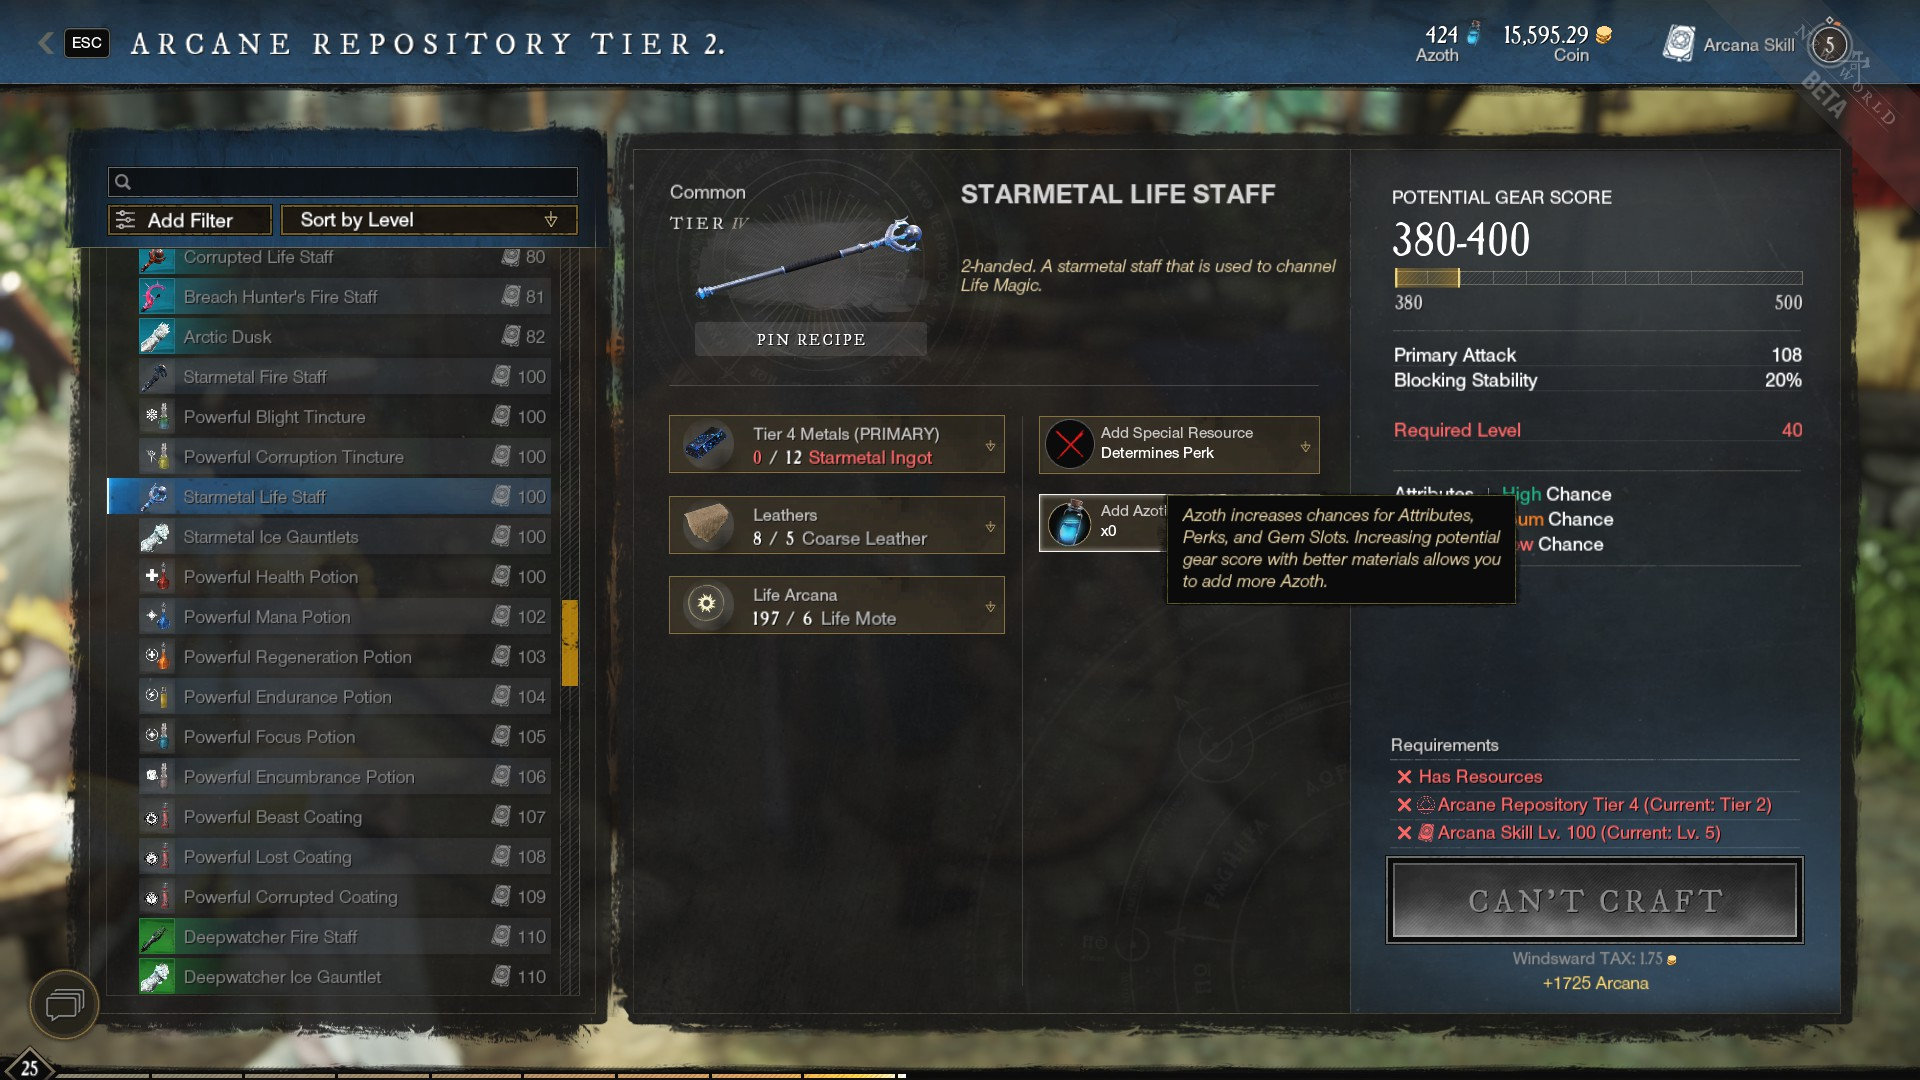 Starmetal Weapons – Arcane Repository Tier IV